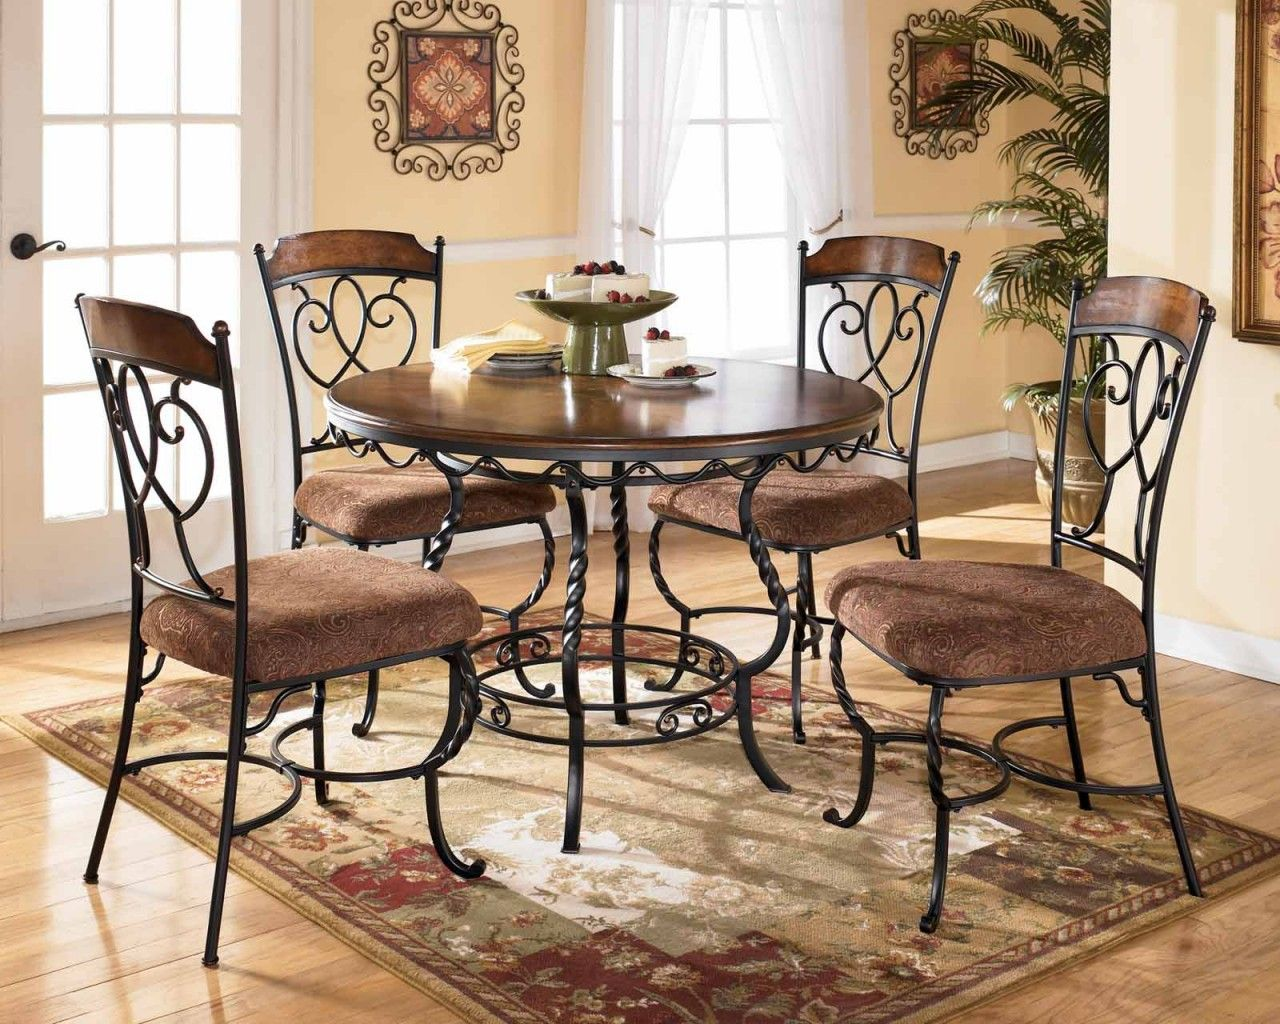 kitchen tables and chairs sets | ... Table Dining Chairs ...